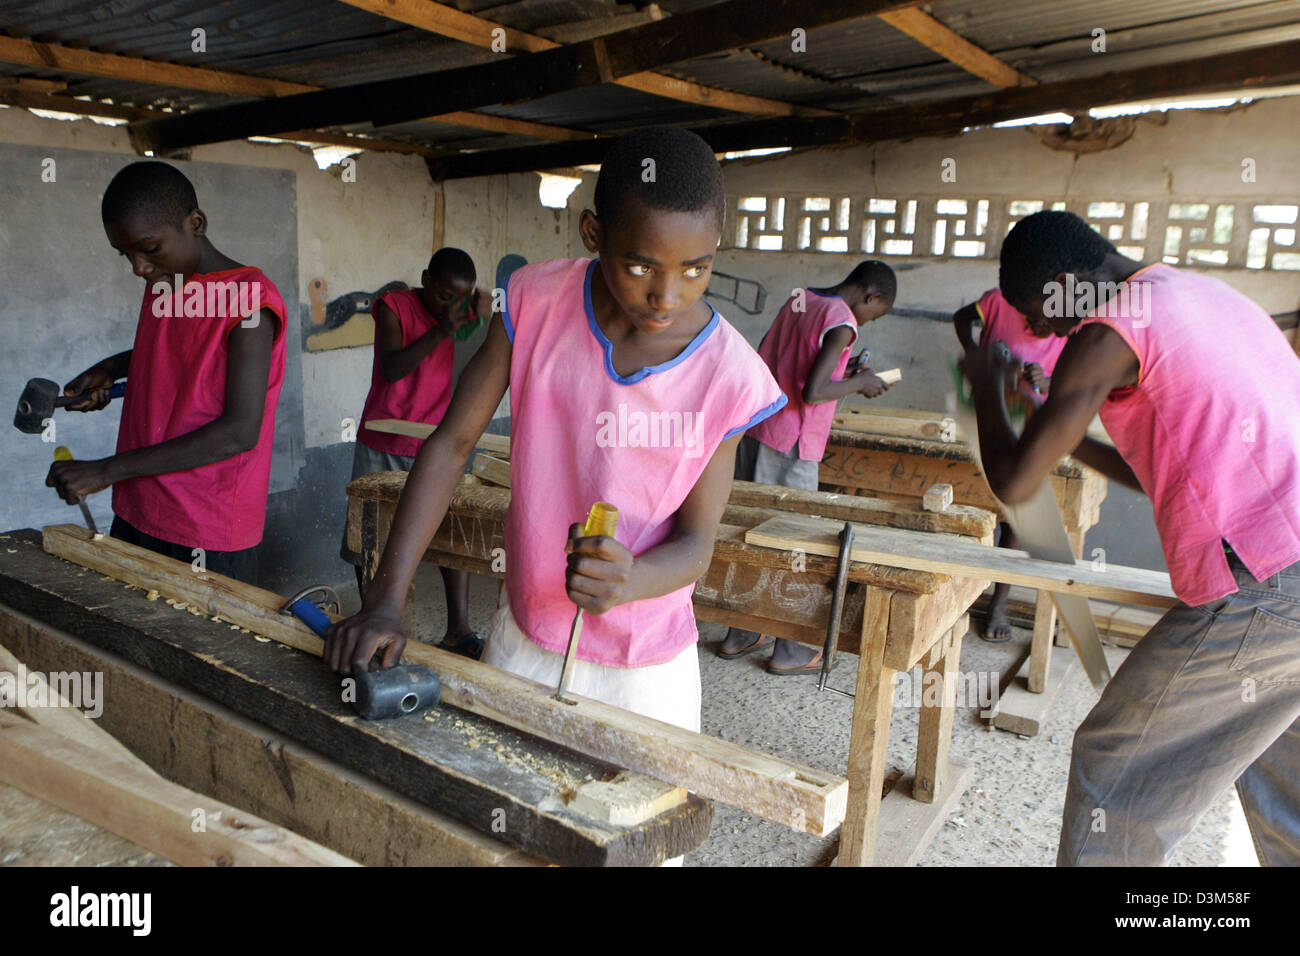 Dpa The Picture Shows Boys At Handicrafts As Preperation For A